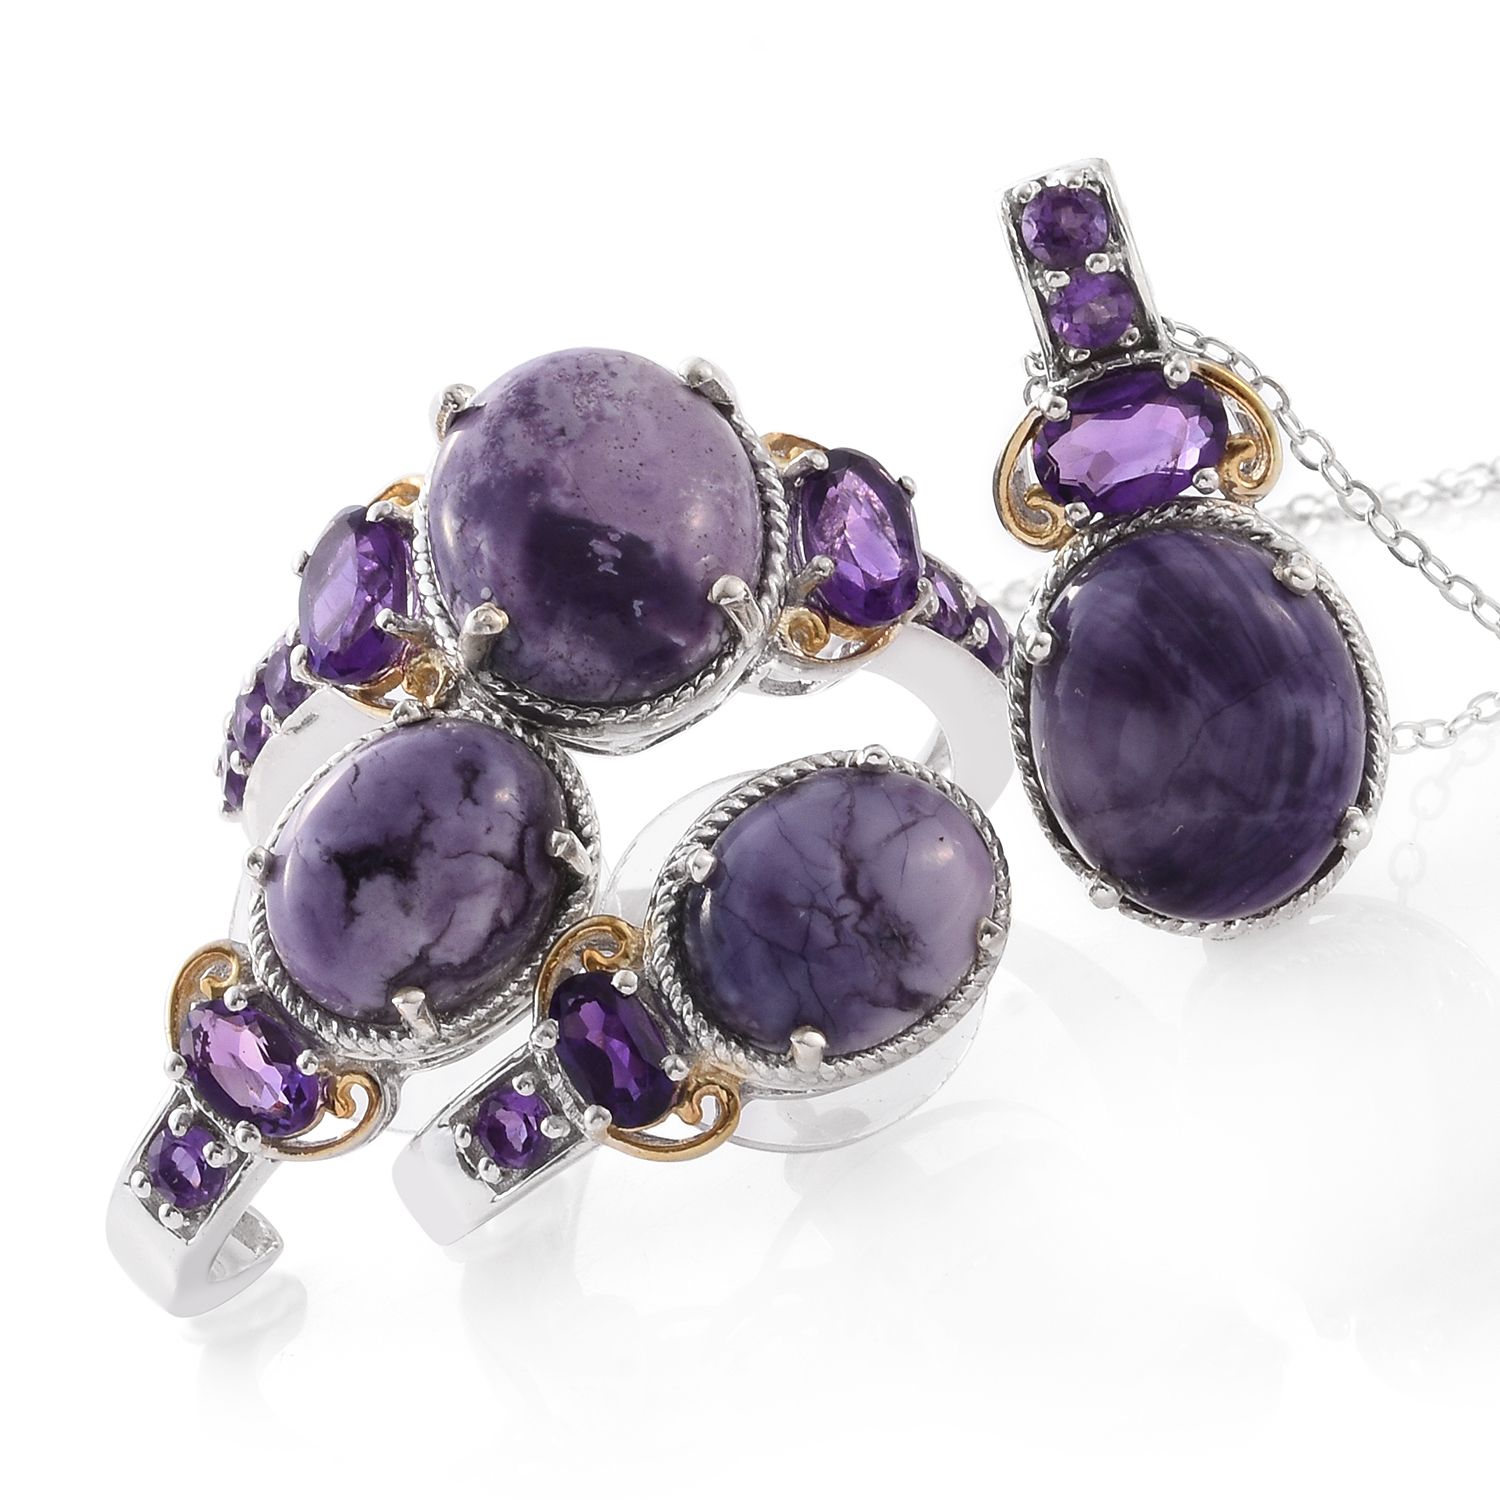 838ab969d Utah Tiffany Stone, Amethyst 14K YG and Platinum Over Sterling Silver  Earrings, Ring (Size 9) and Pendant With Chain (20 in) TGW 14.57 cts.    Shop LC